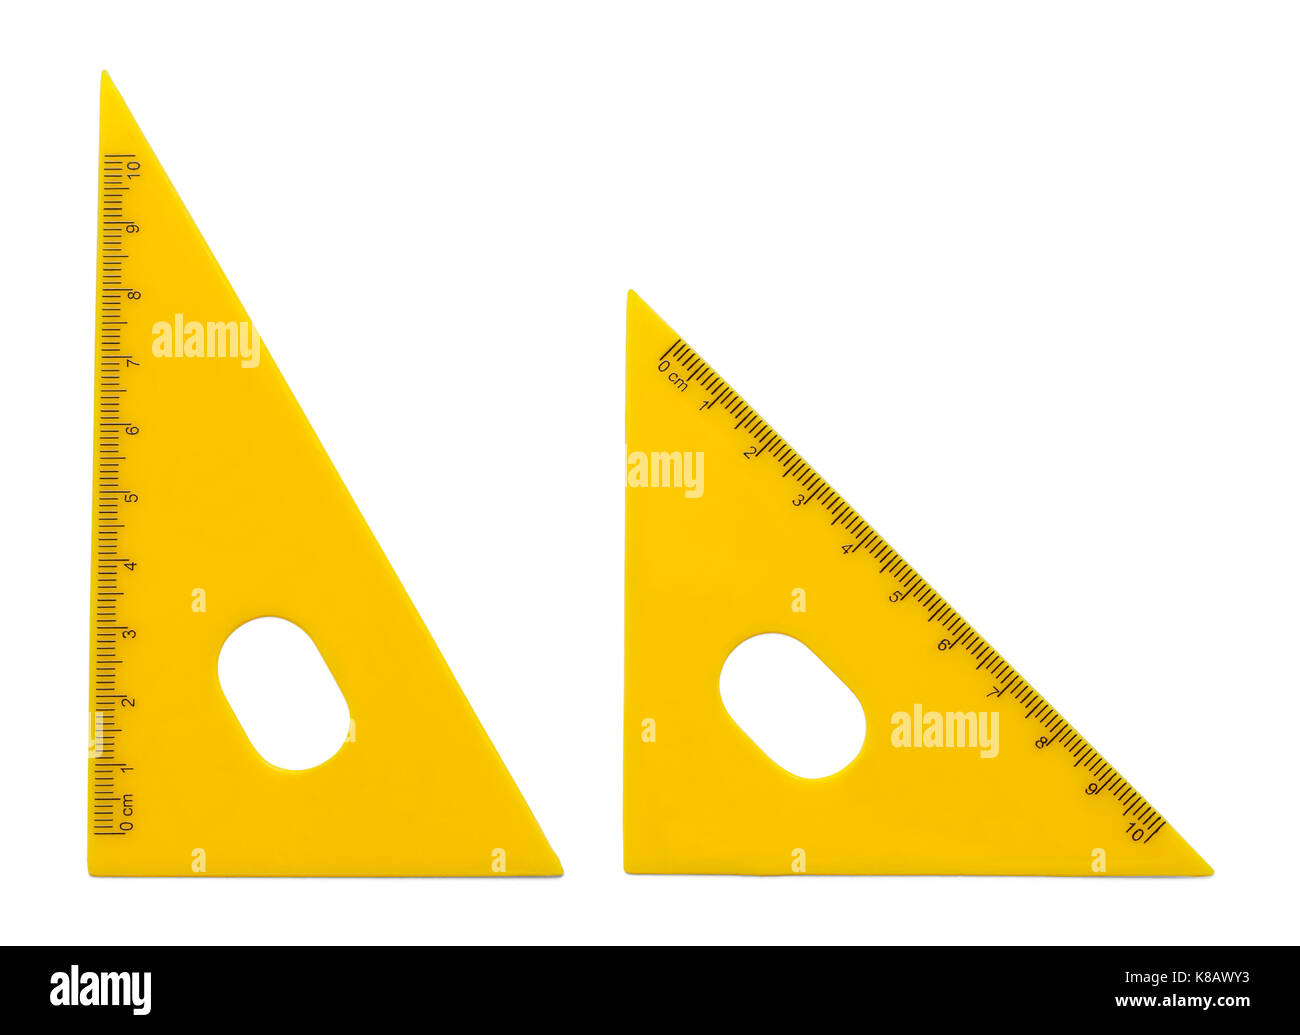 Yellow Triangle Rulers Isolated on White Background. - Stock Image